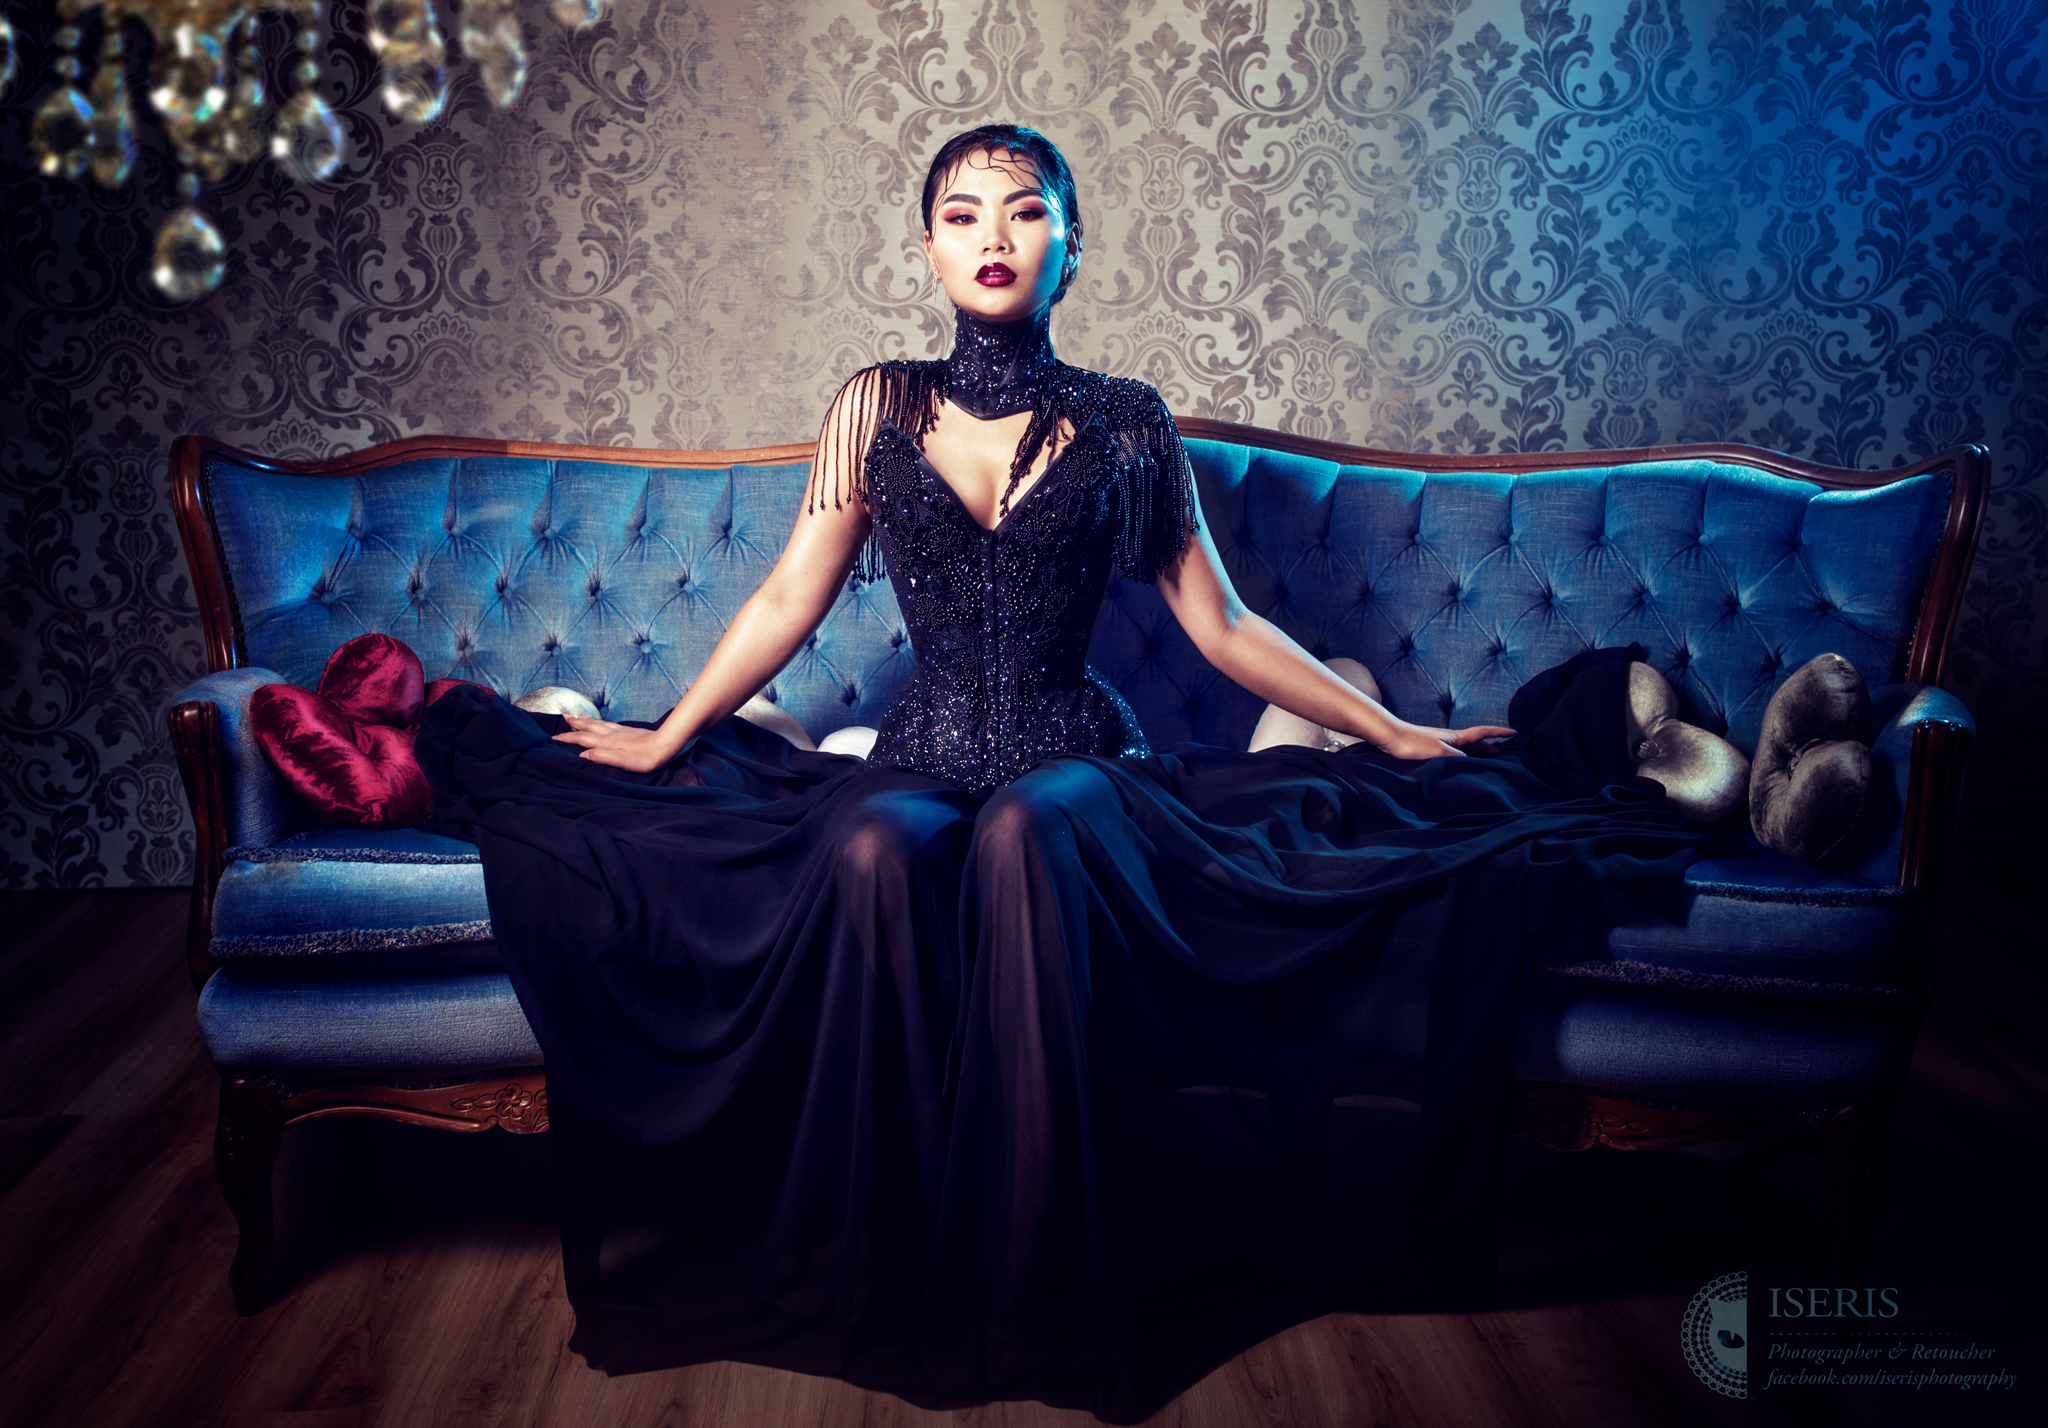 Fantasy Gothic Cosplay Bodoir Beauty Portrait Fotoshooting